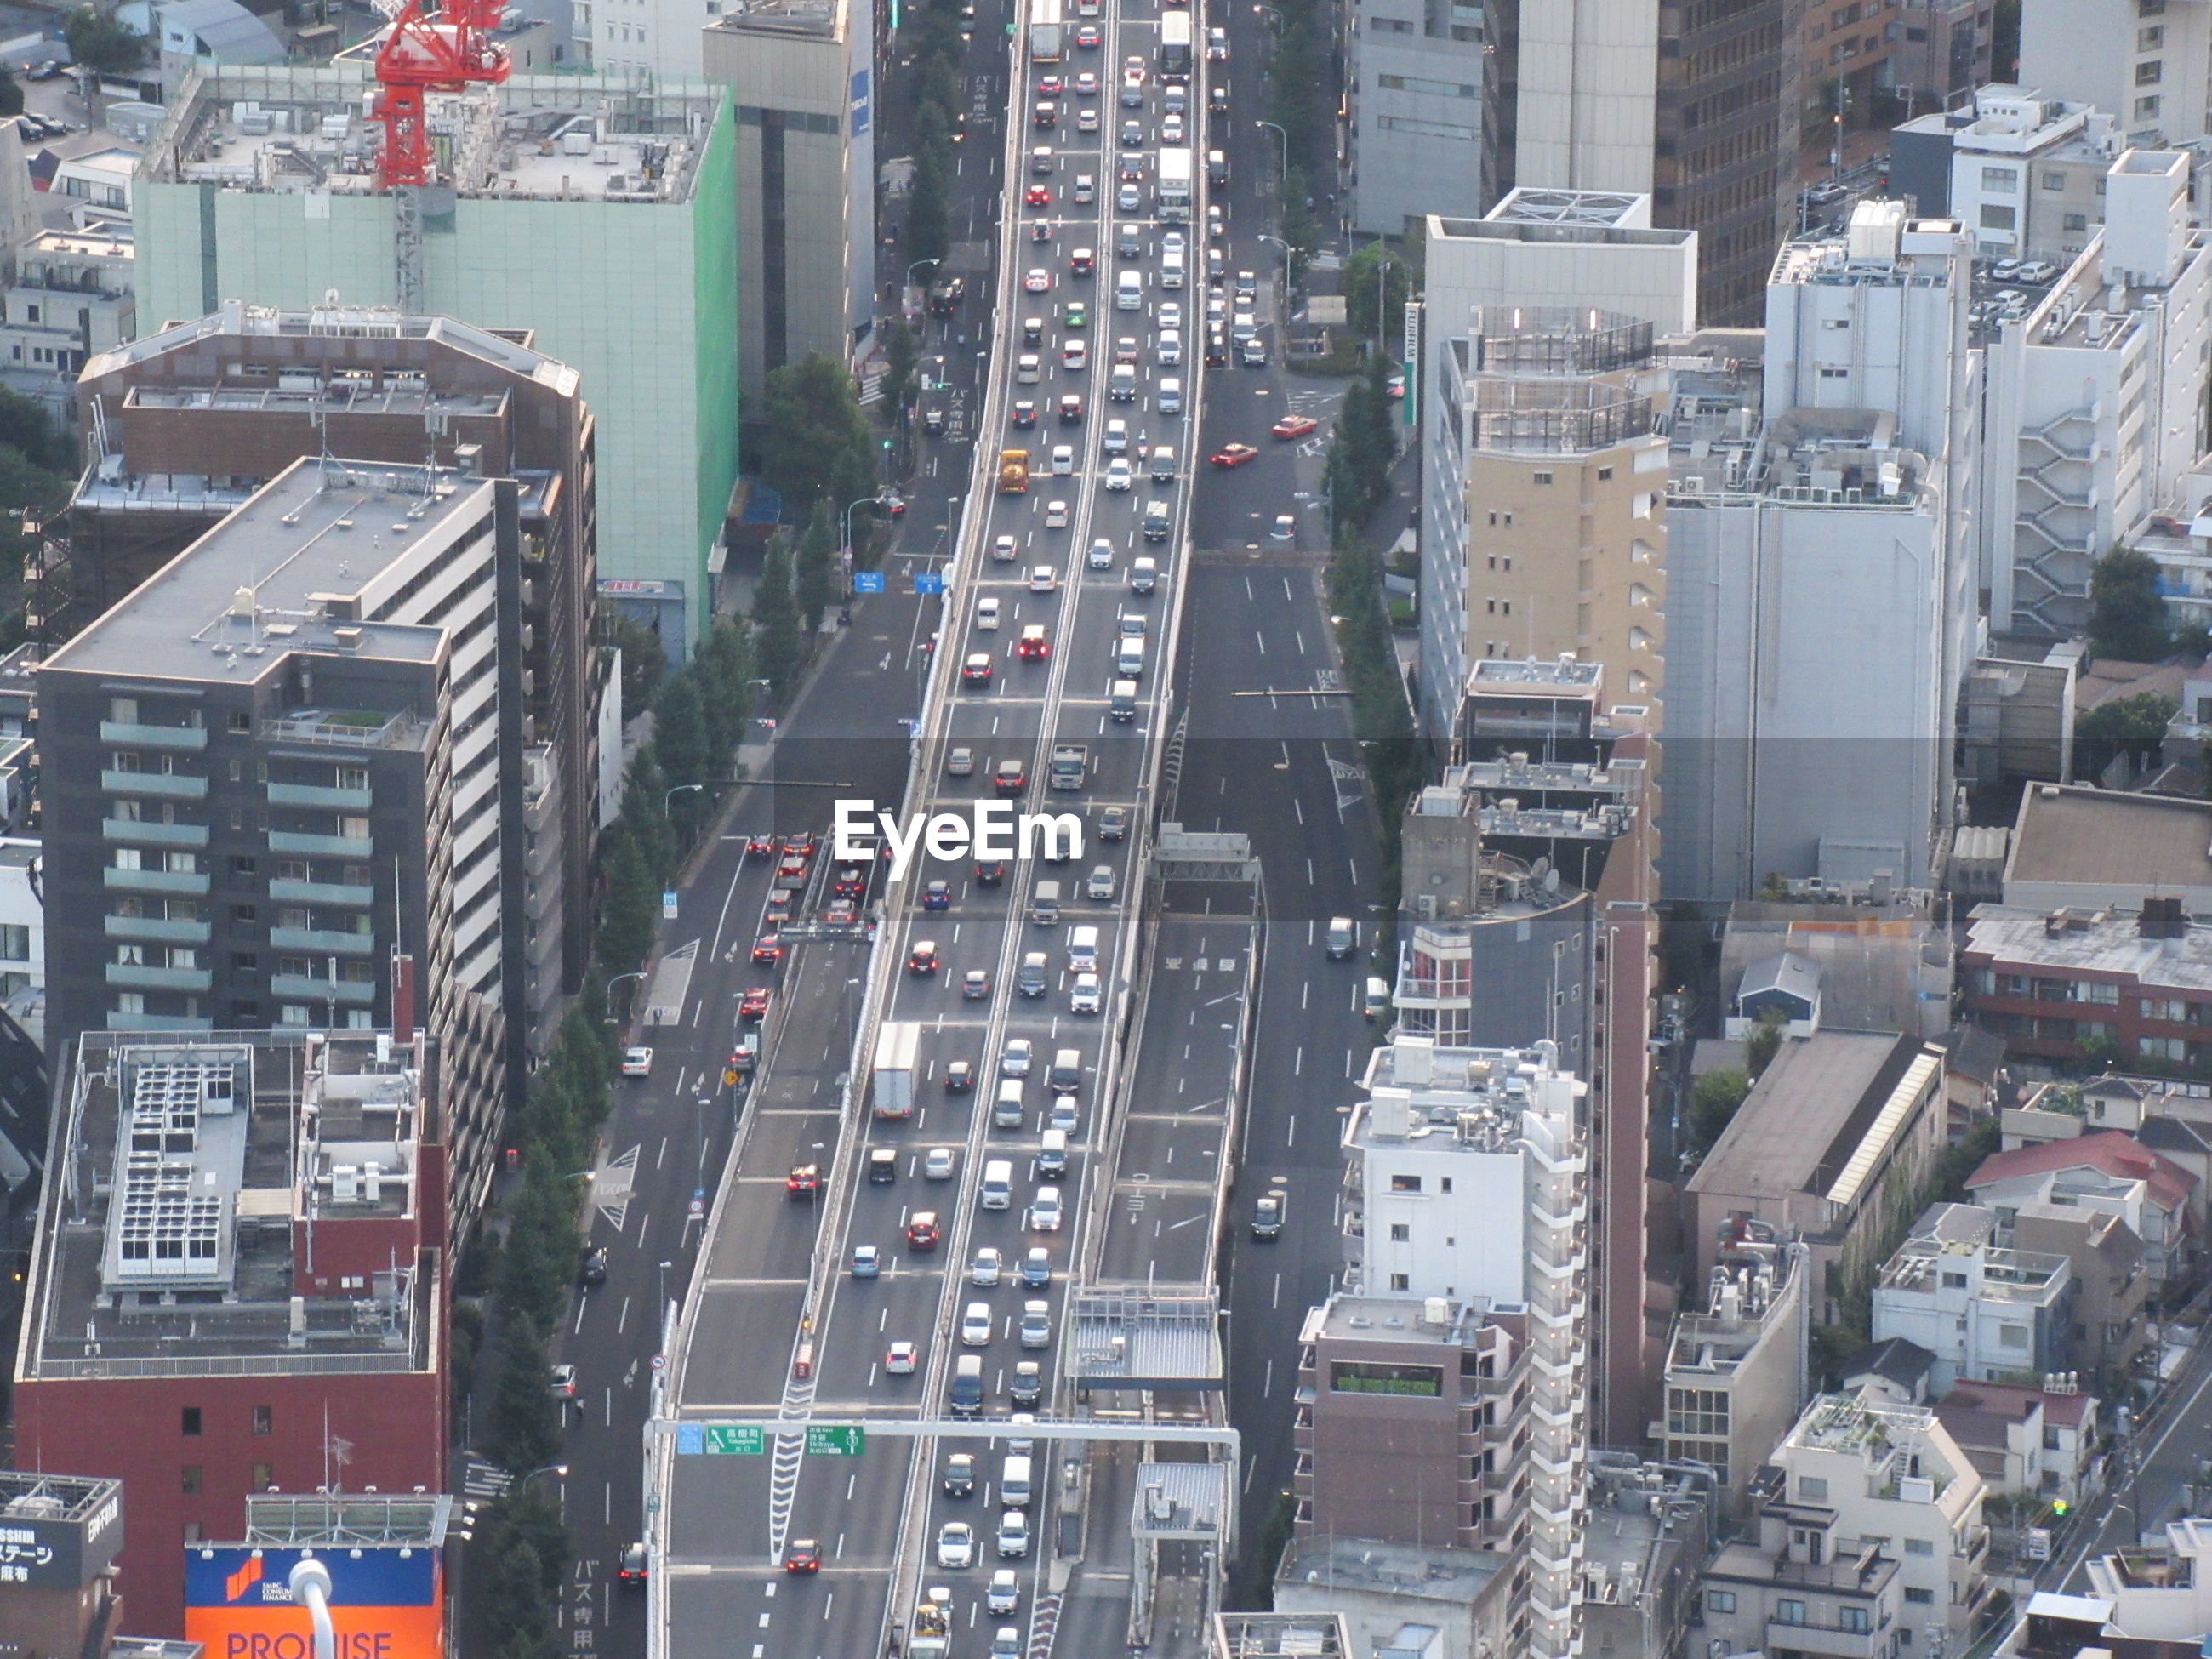 HIGH ANGLE VIEW OF TRAFFIC ON CITY STREET